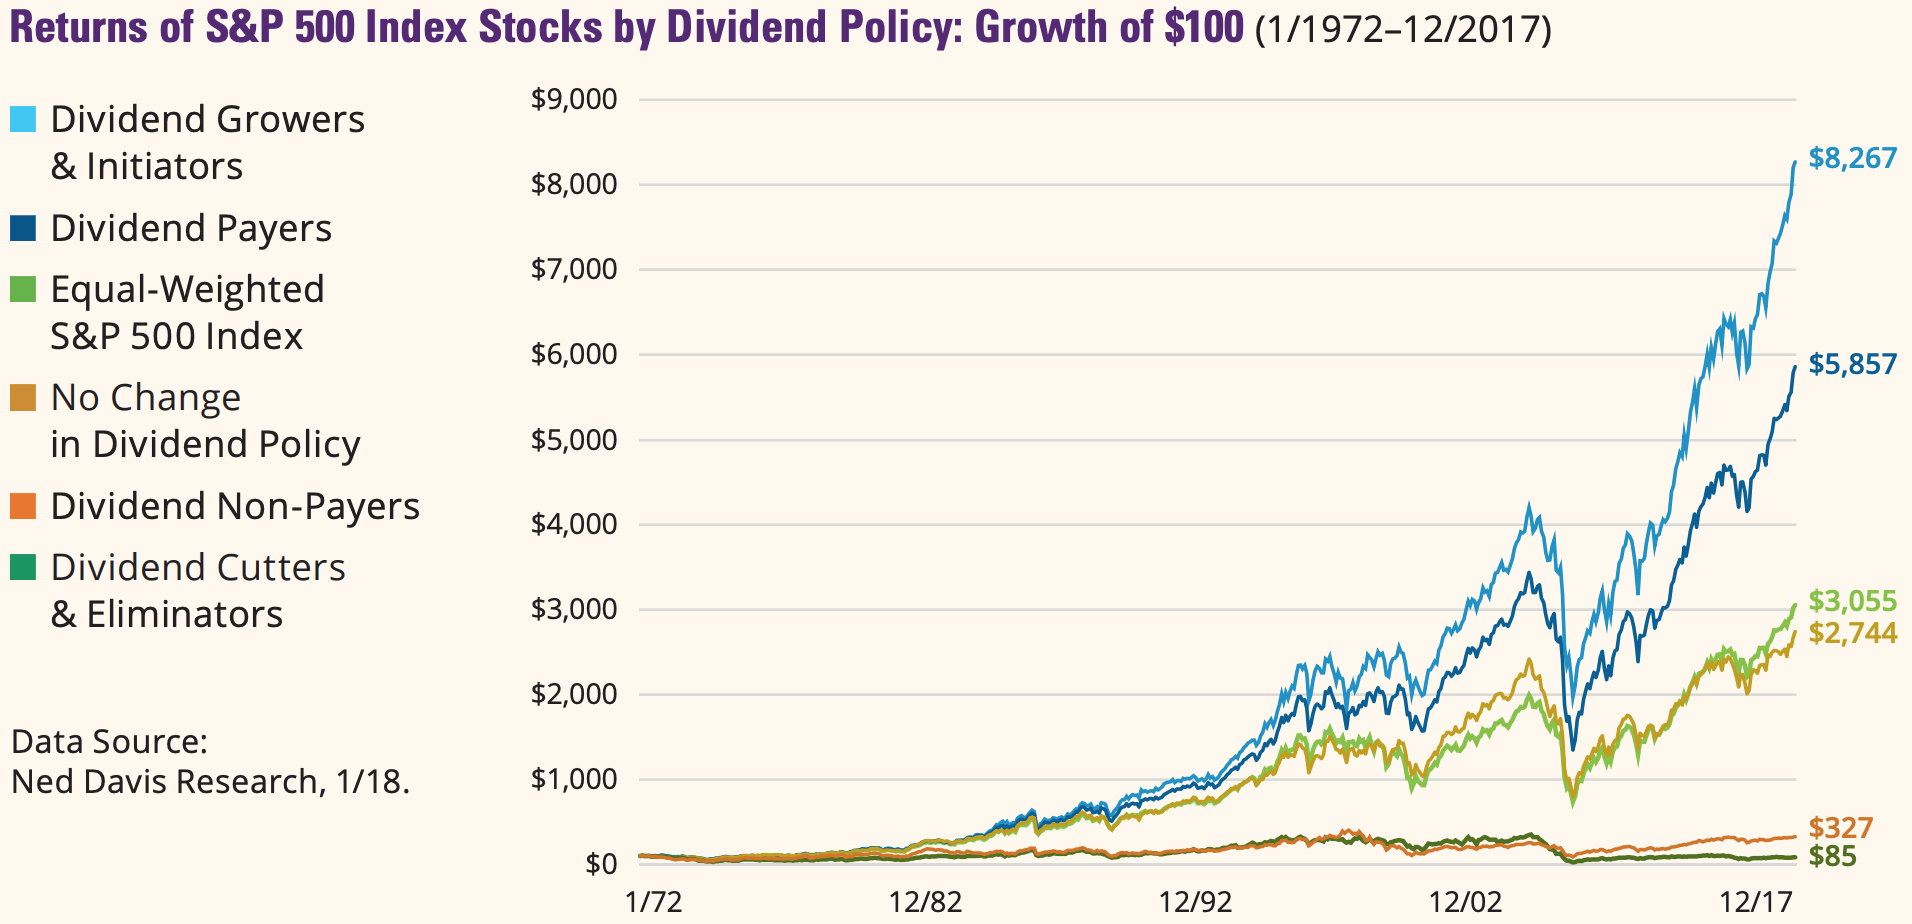 Returns of S&P Index Stocks by Dividends Policy